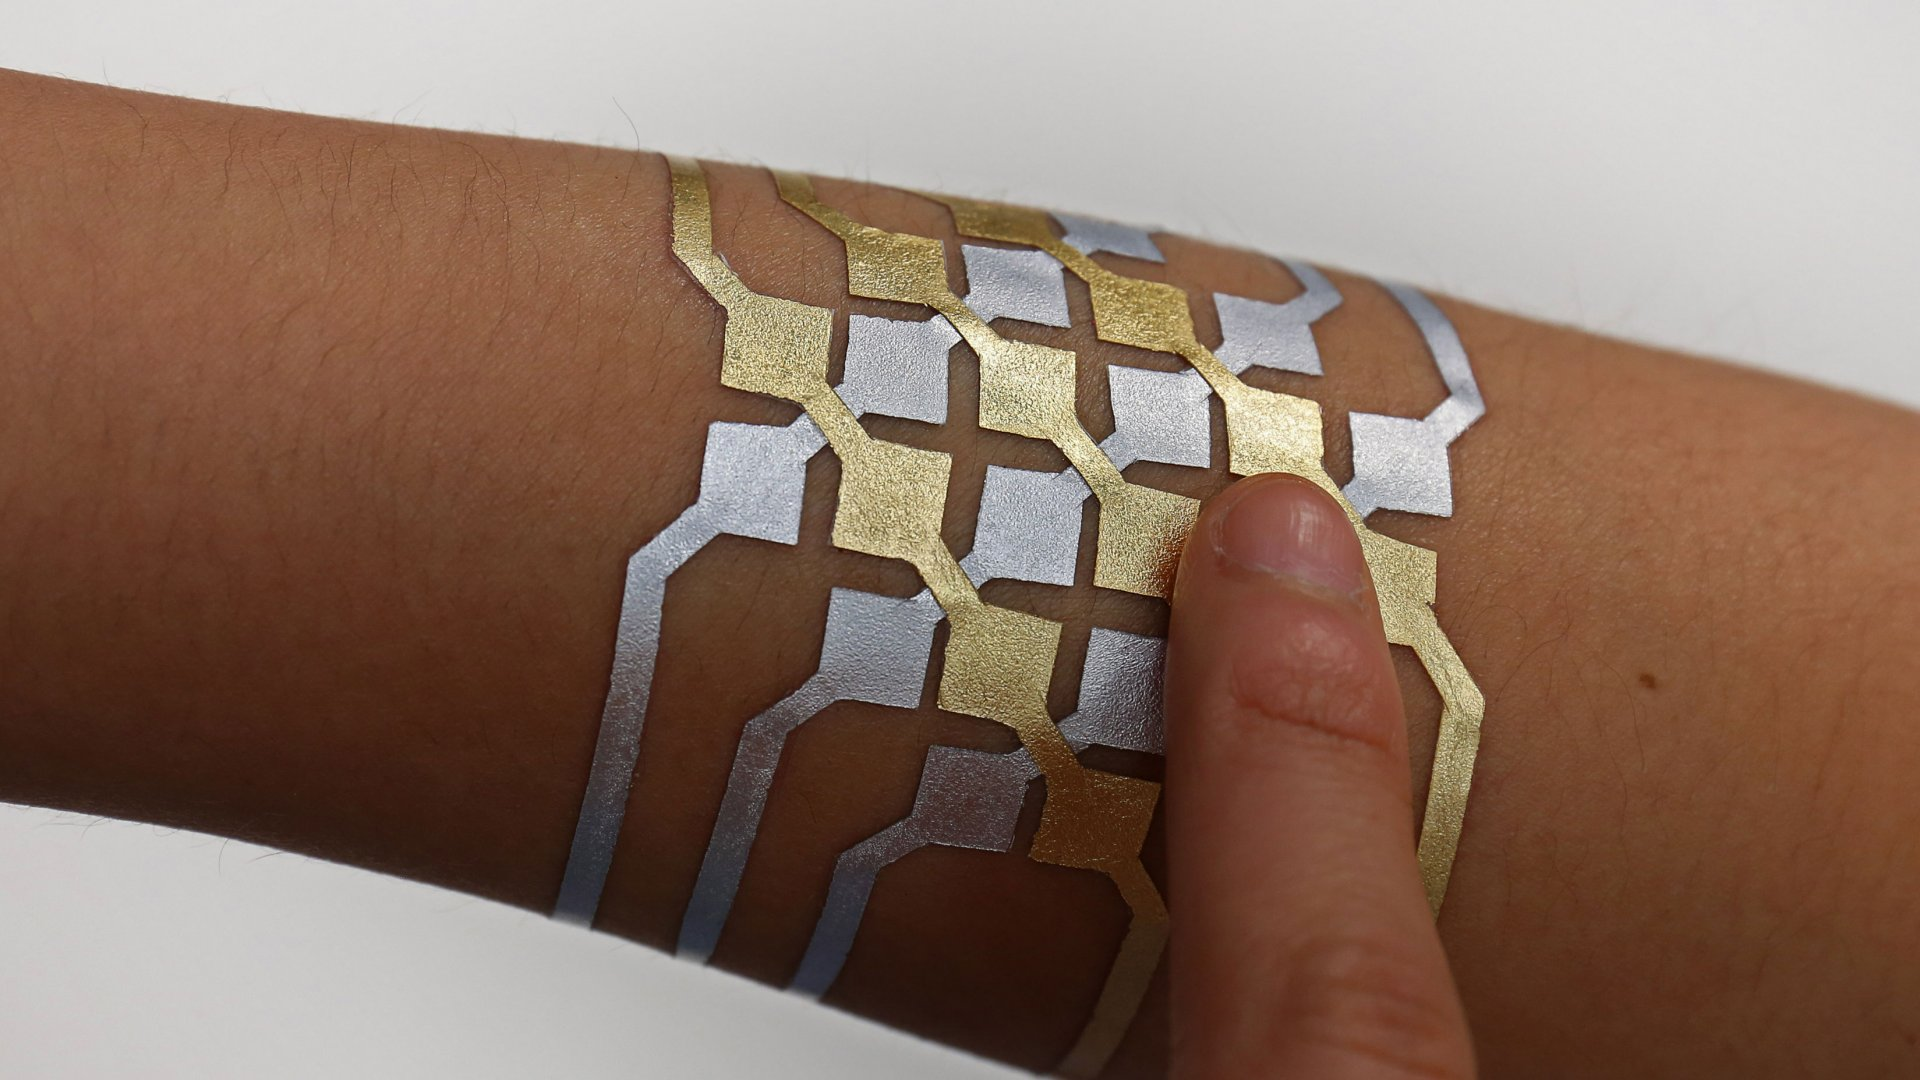 These Temporary Tattoos Turn Your Skin Into a Touchpad